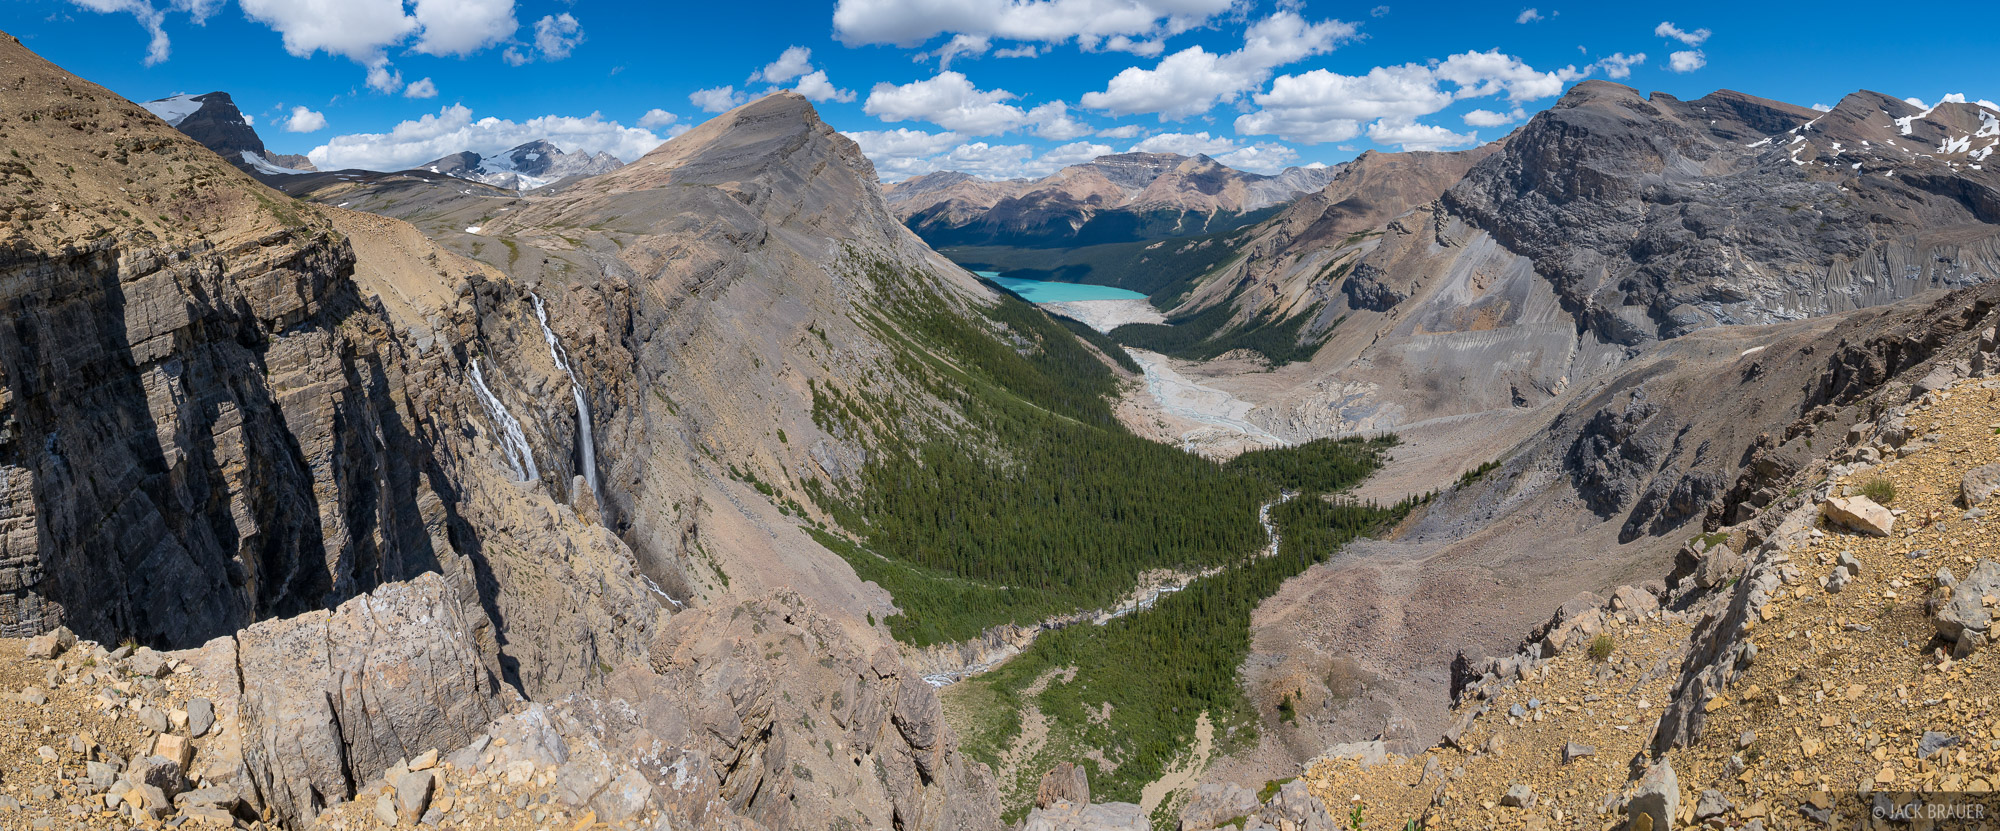 Alberta, Banff National Park, Canada, Canadian Rockies, Peyto Lake, waterfall, photo